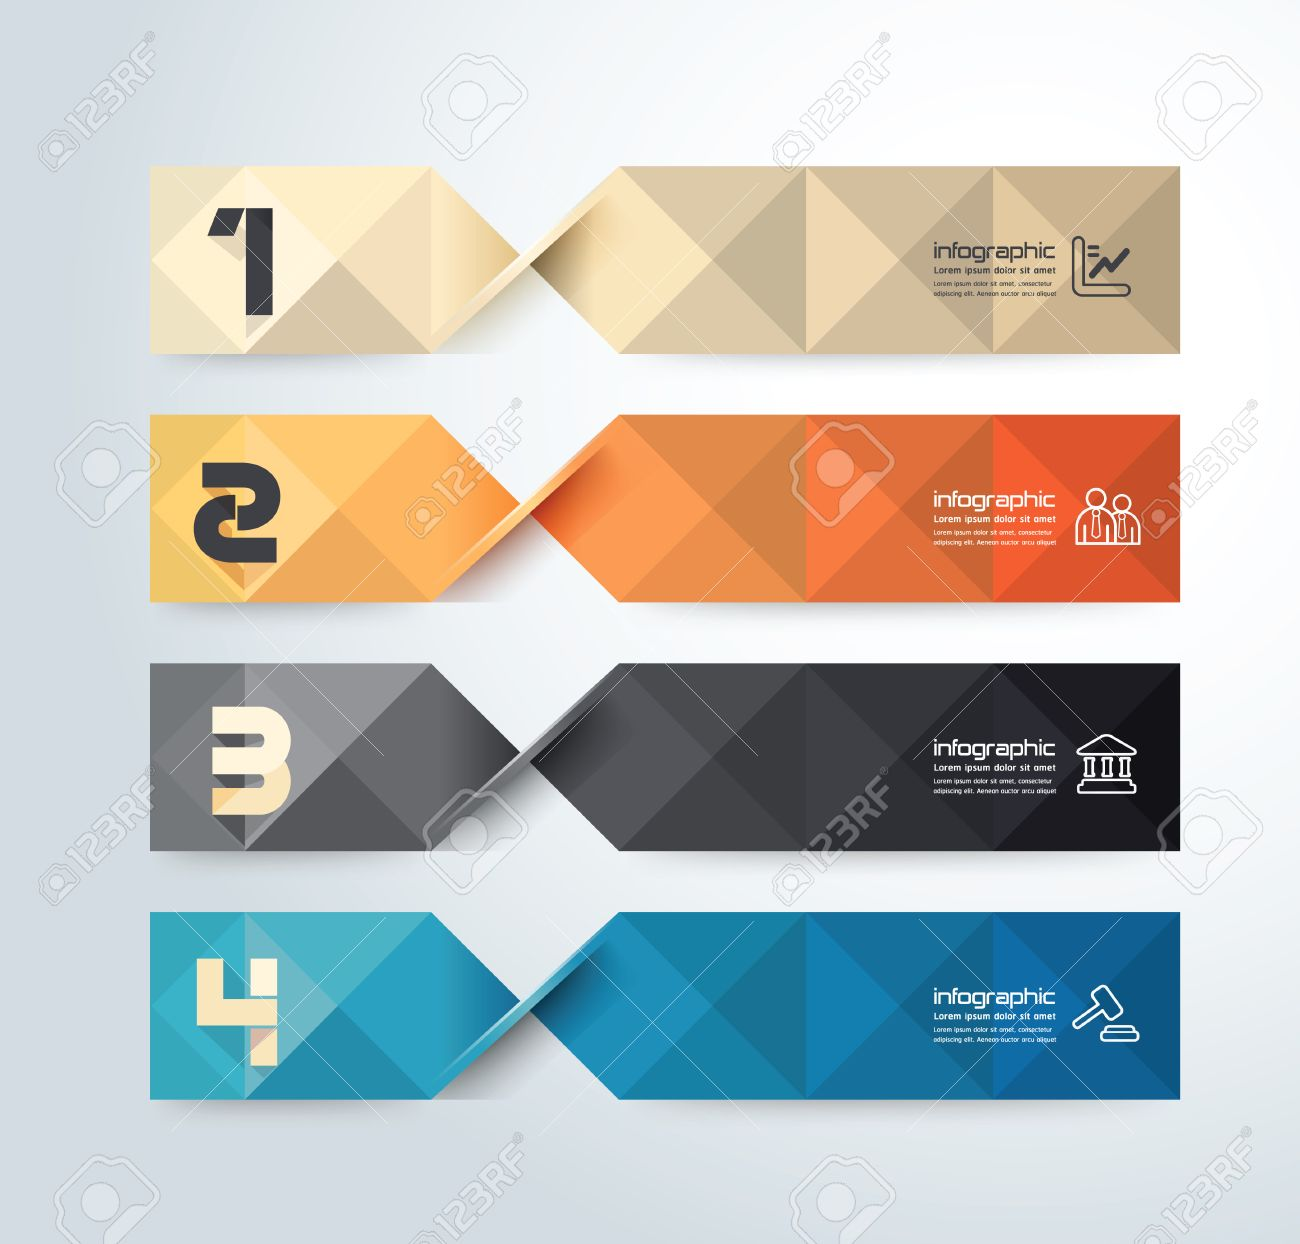 Modern geometric graph Design infographic template.can be used for infographics .graphic or website layout vector Stock Vector - 25434826